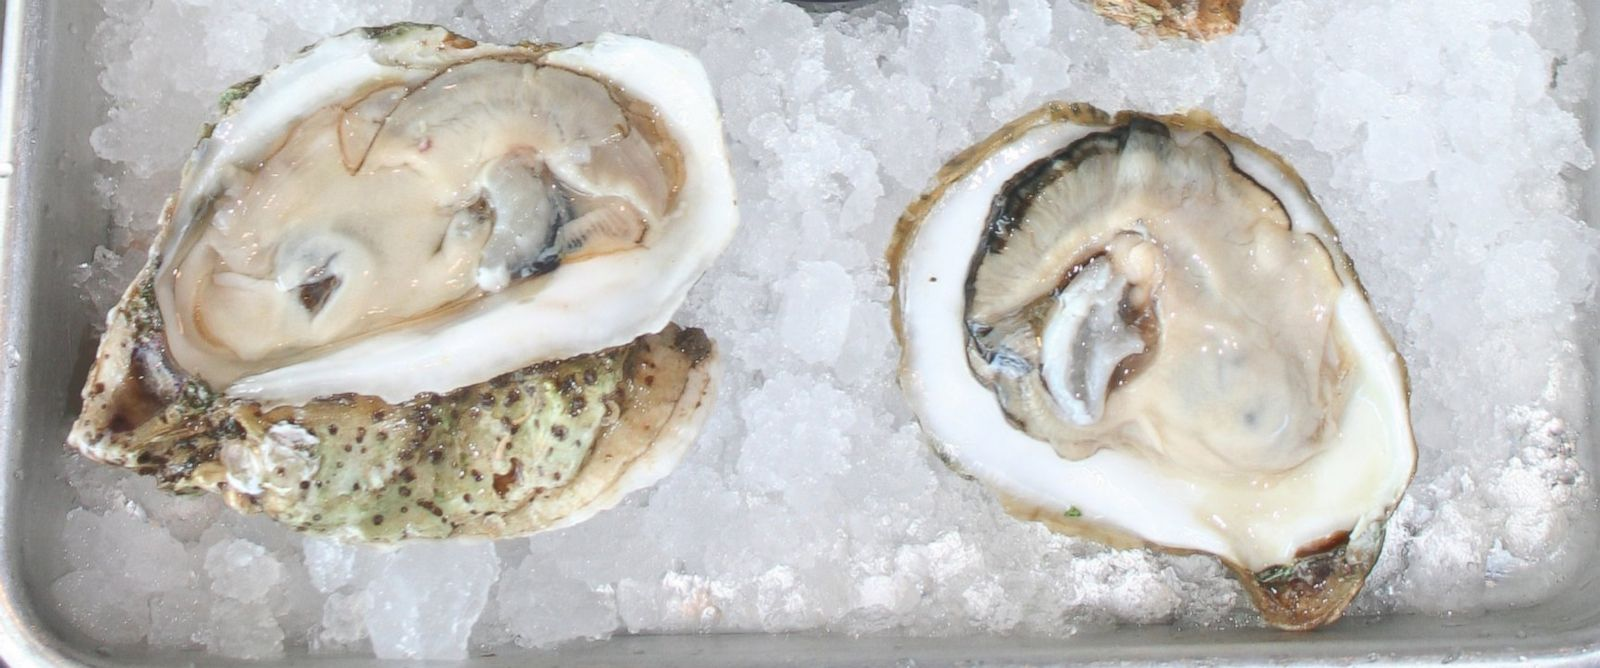 PHOTO: Toni Elliot found 50 pearls after she bit into an oyster while lunching at Pucketts Boat House in Franklin, Tenn. on April 2, 2015.